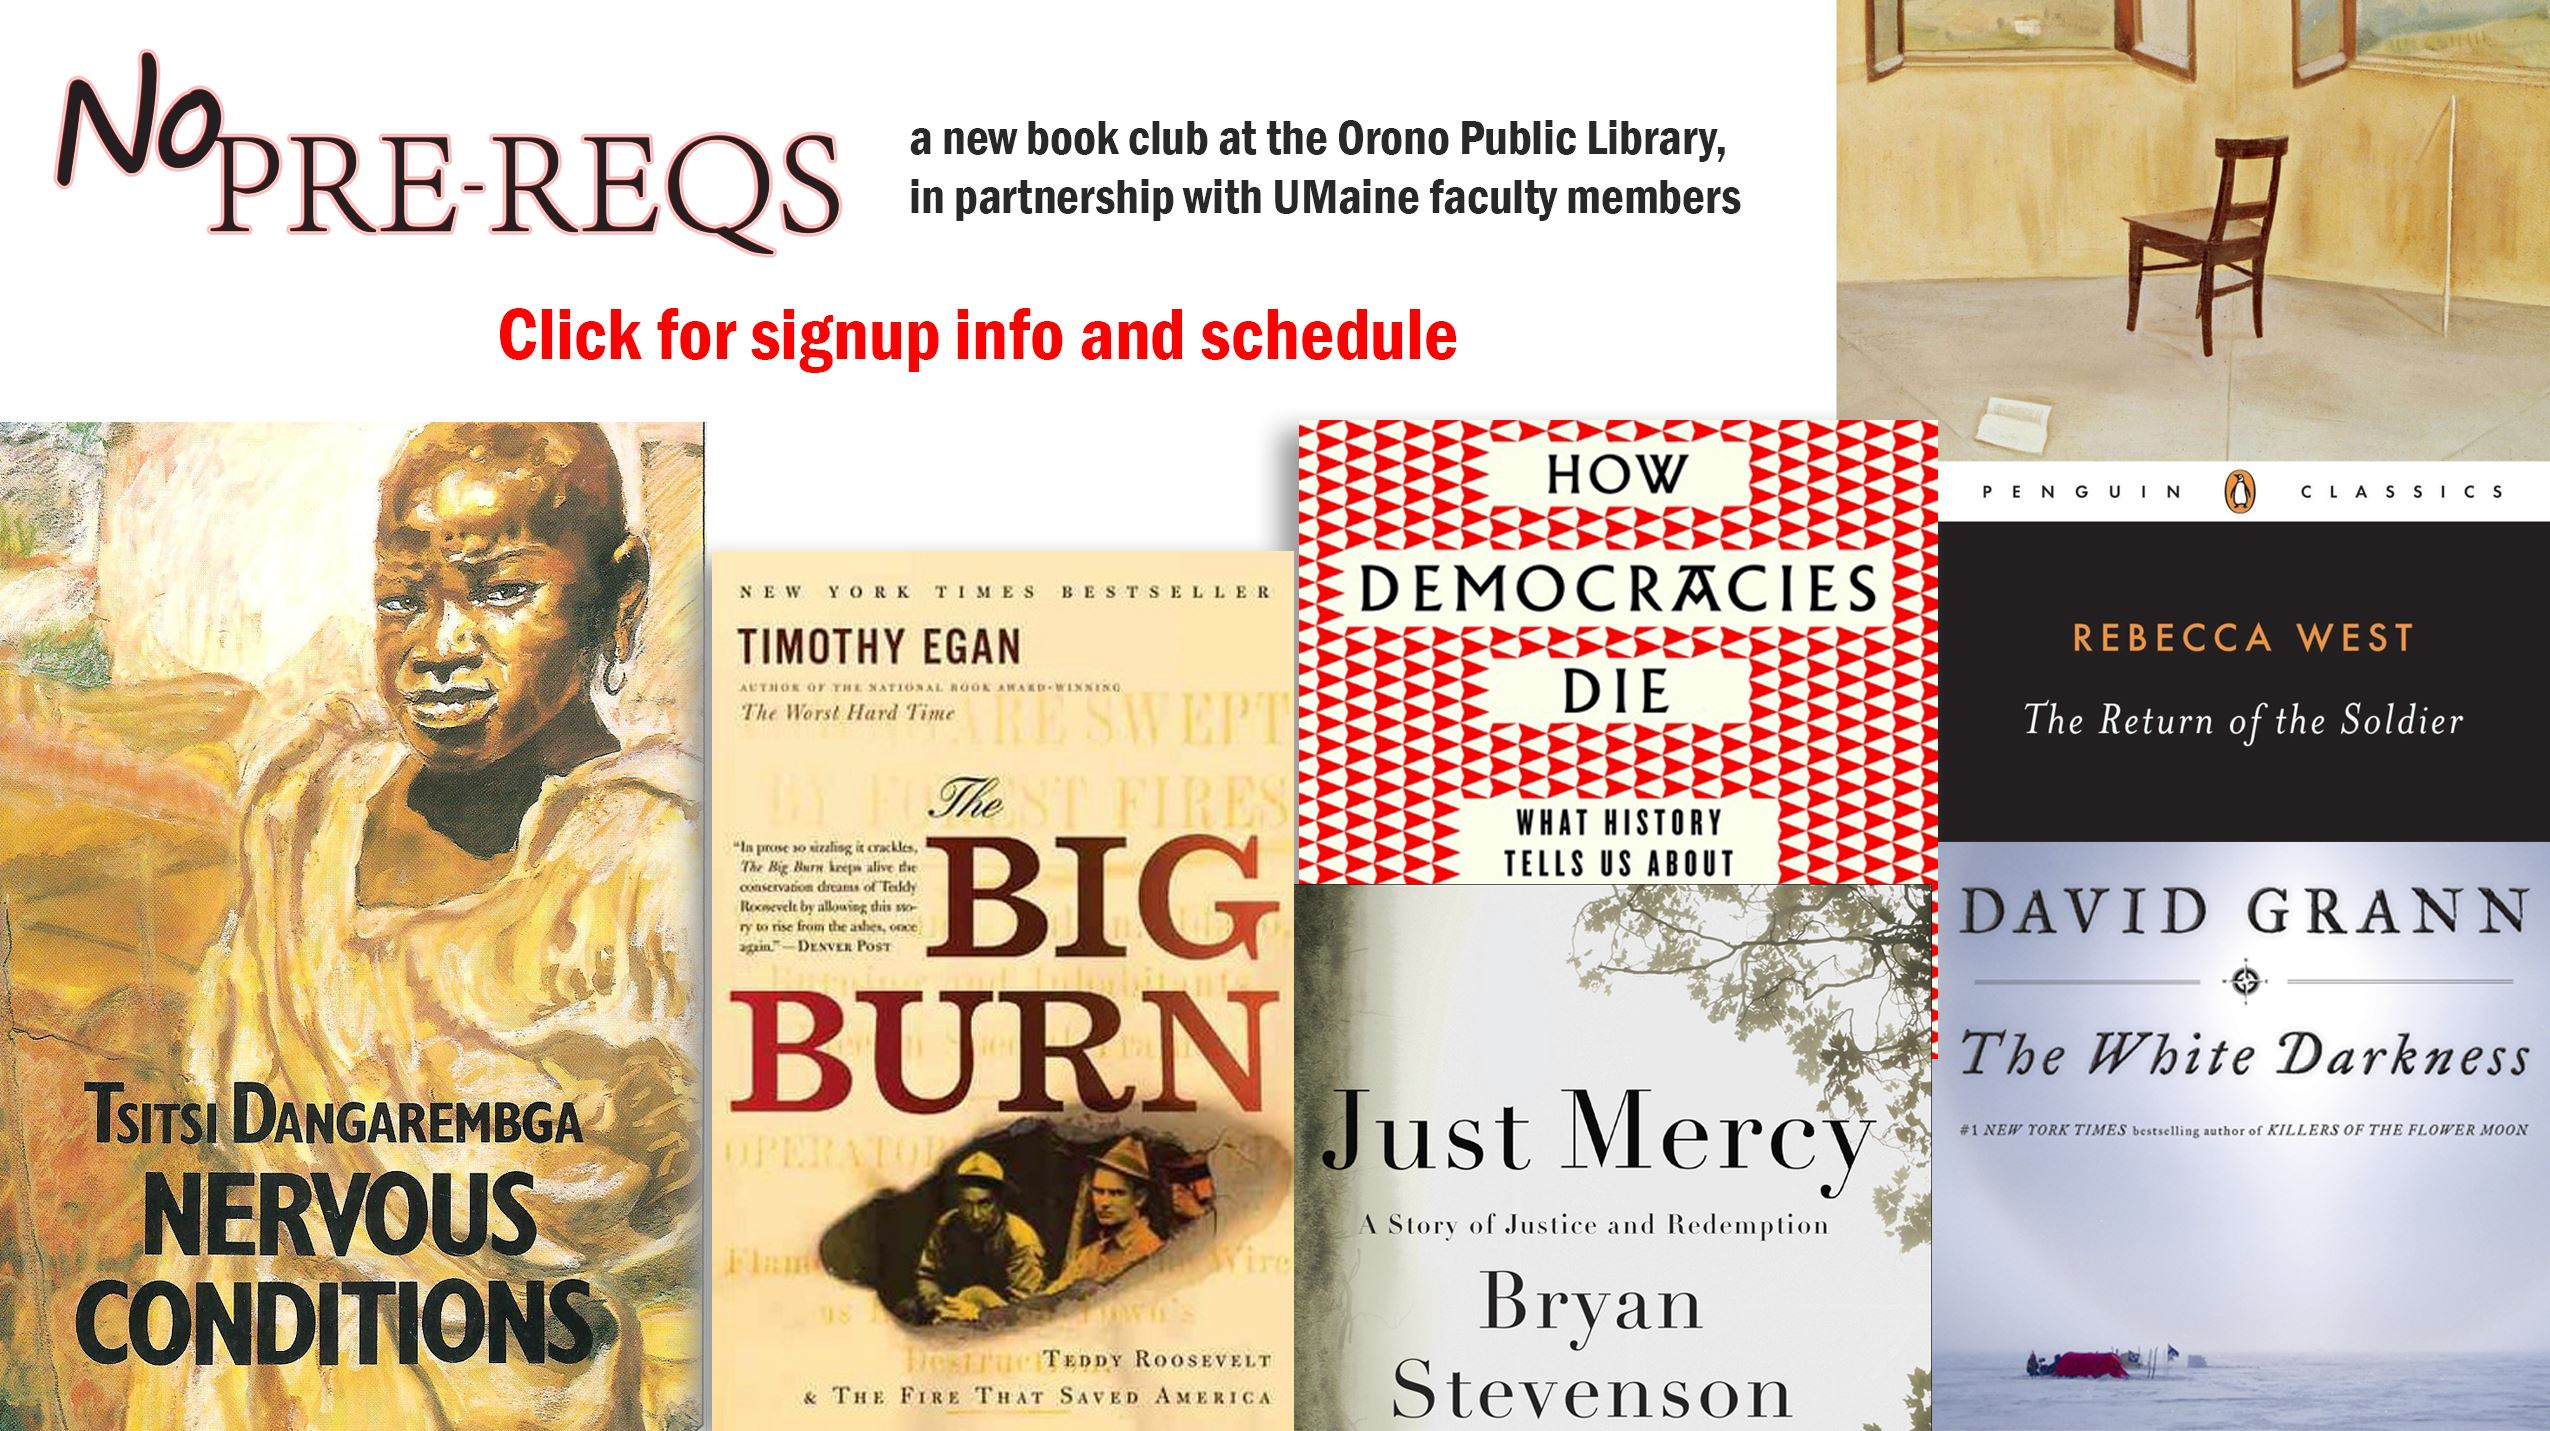 Click to learn about the new library book club No Pre-Reqs